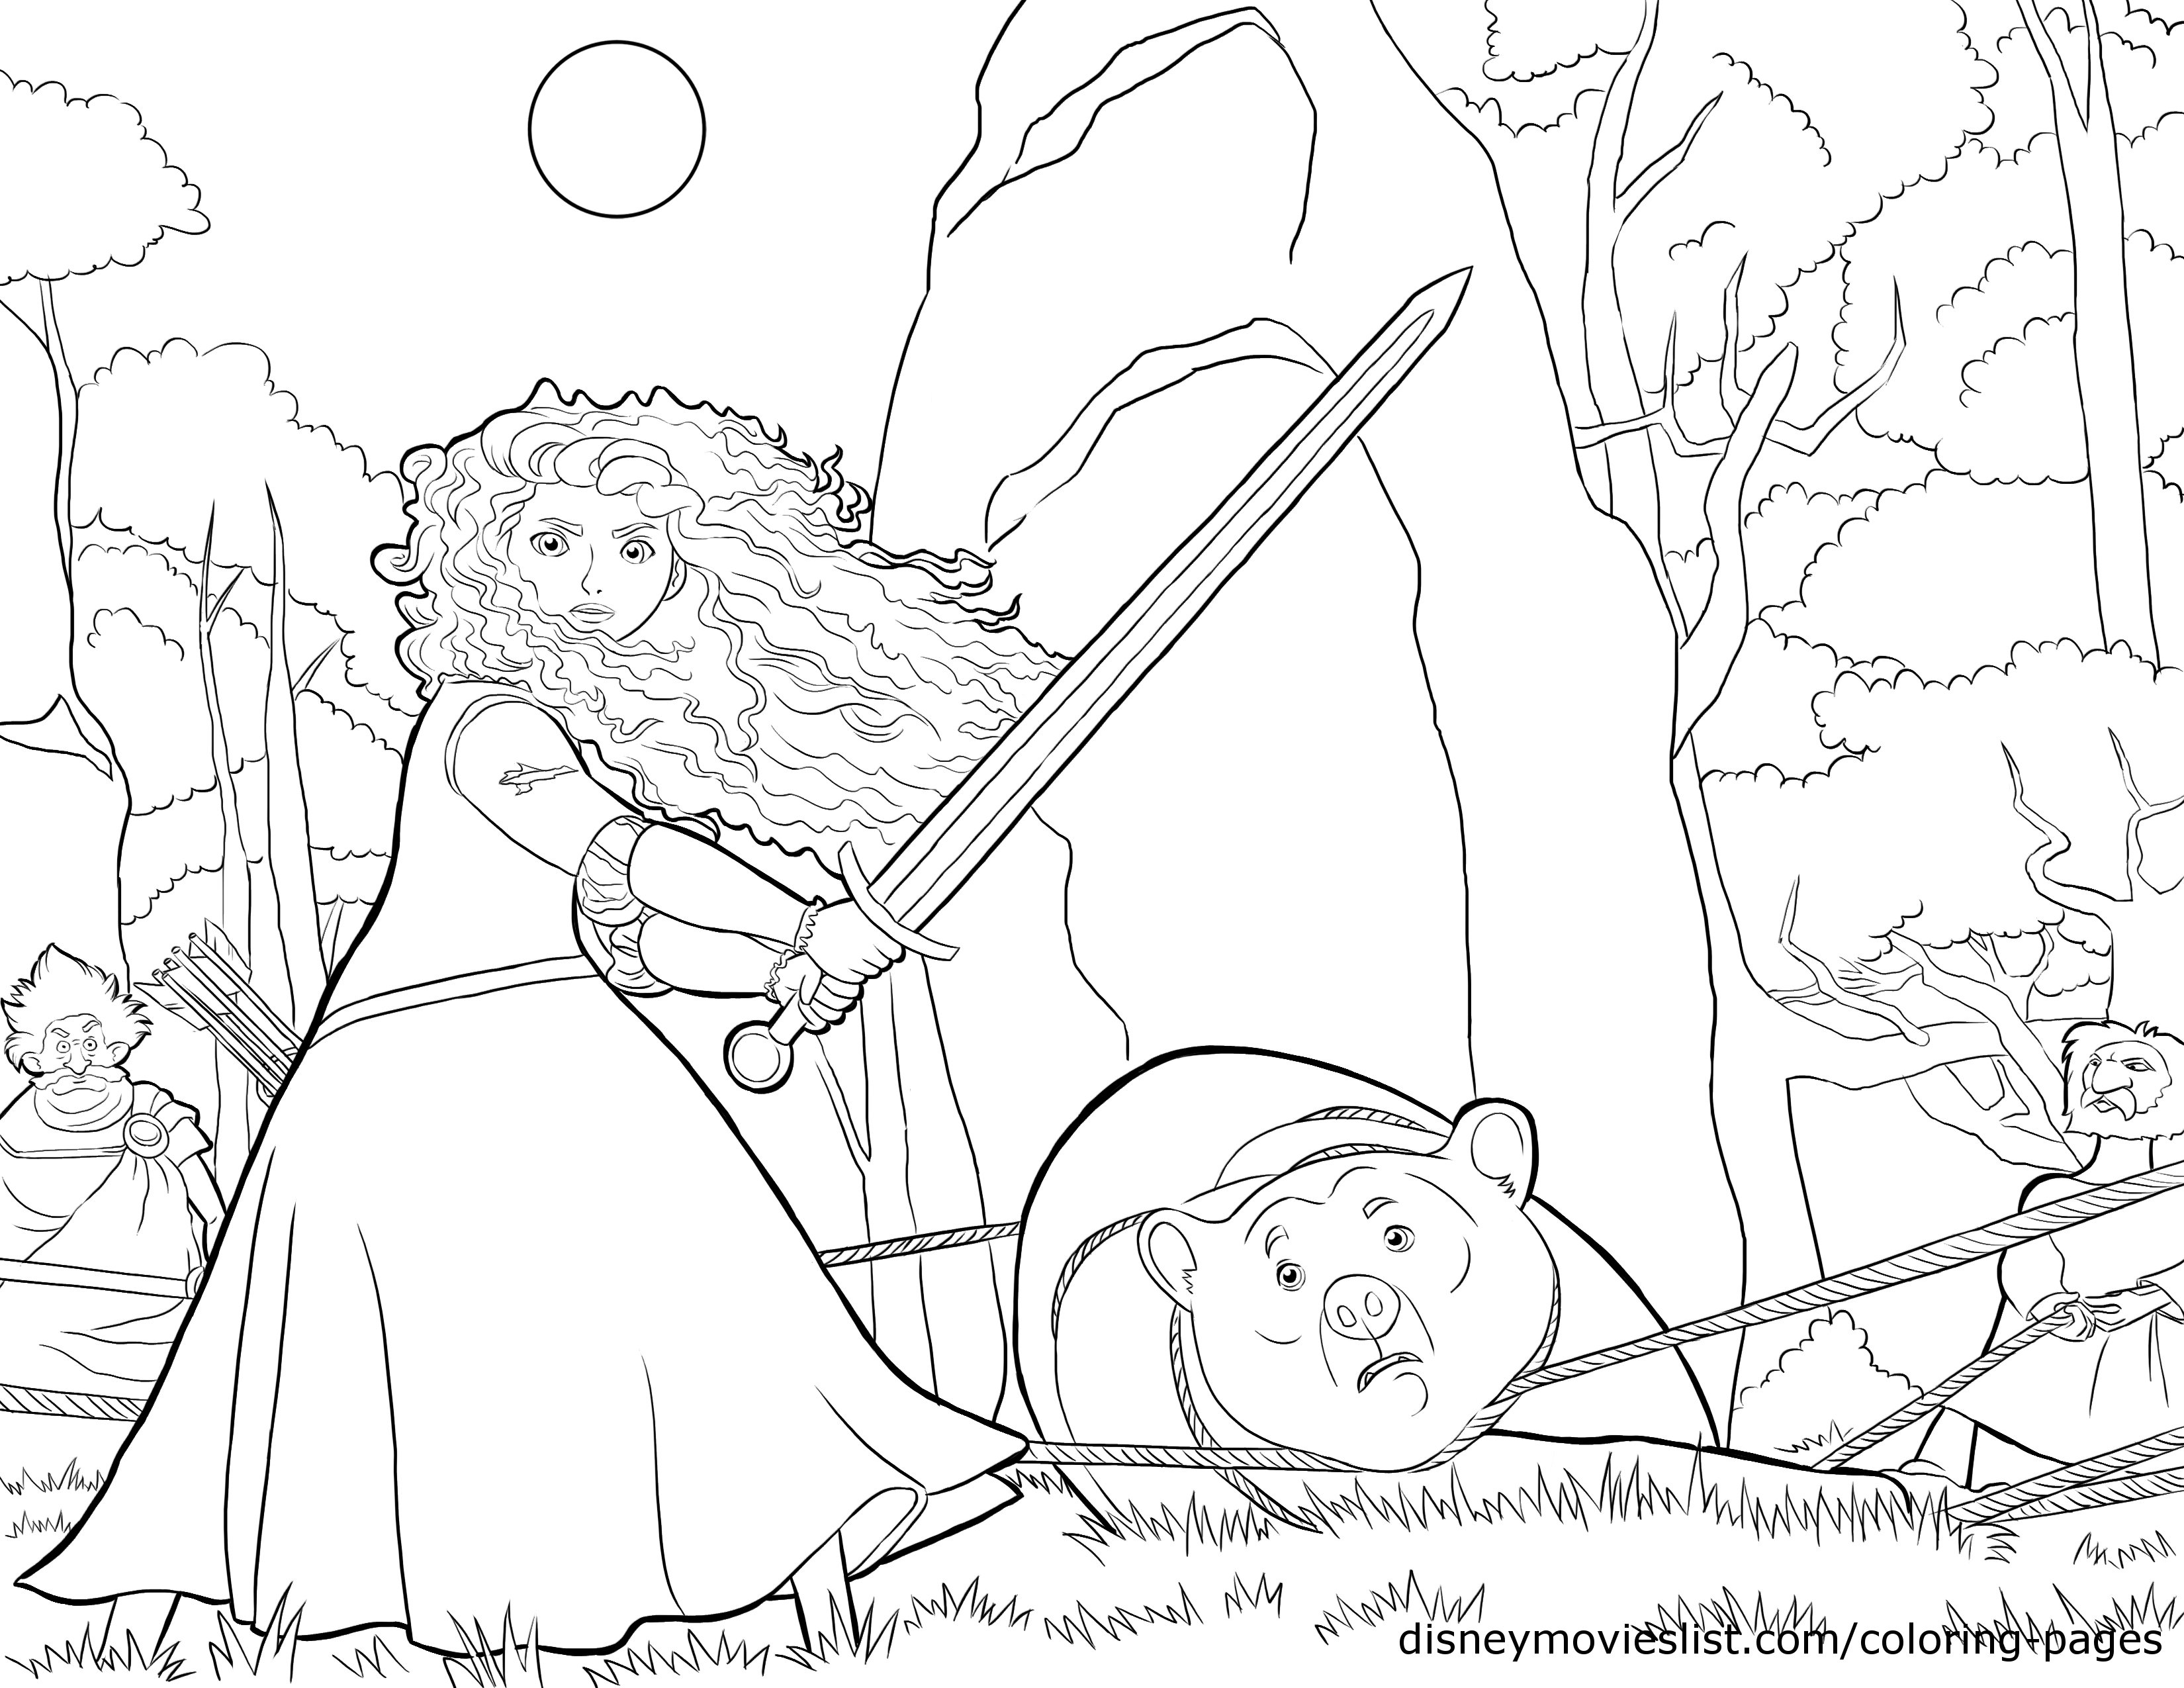 Brave (Movie) coloring #7, Download drawings